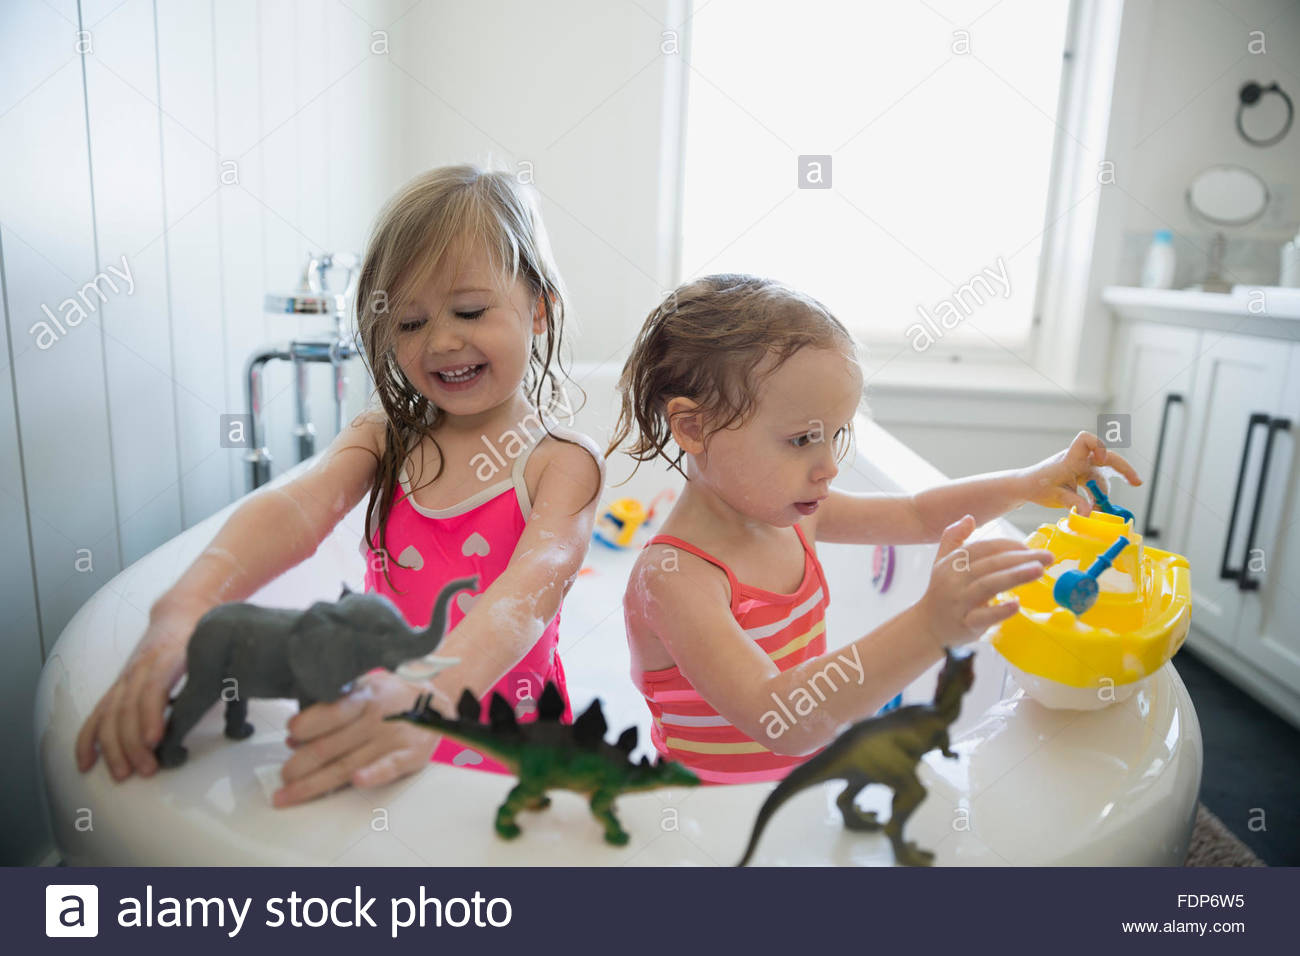 Sisters playing with toy animals in bath - Stock Image